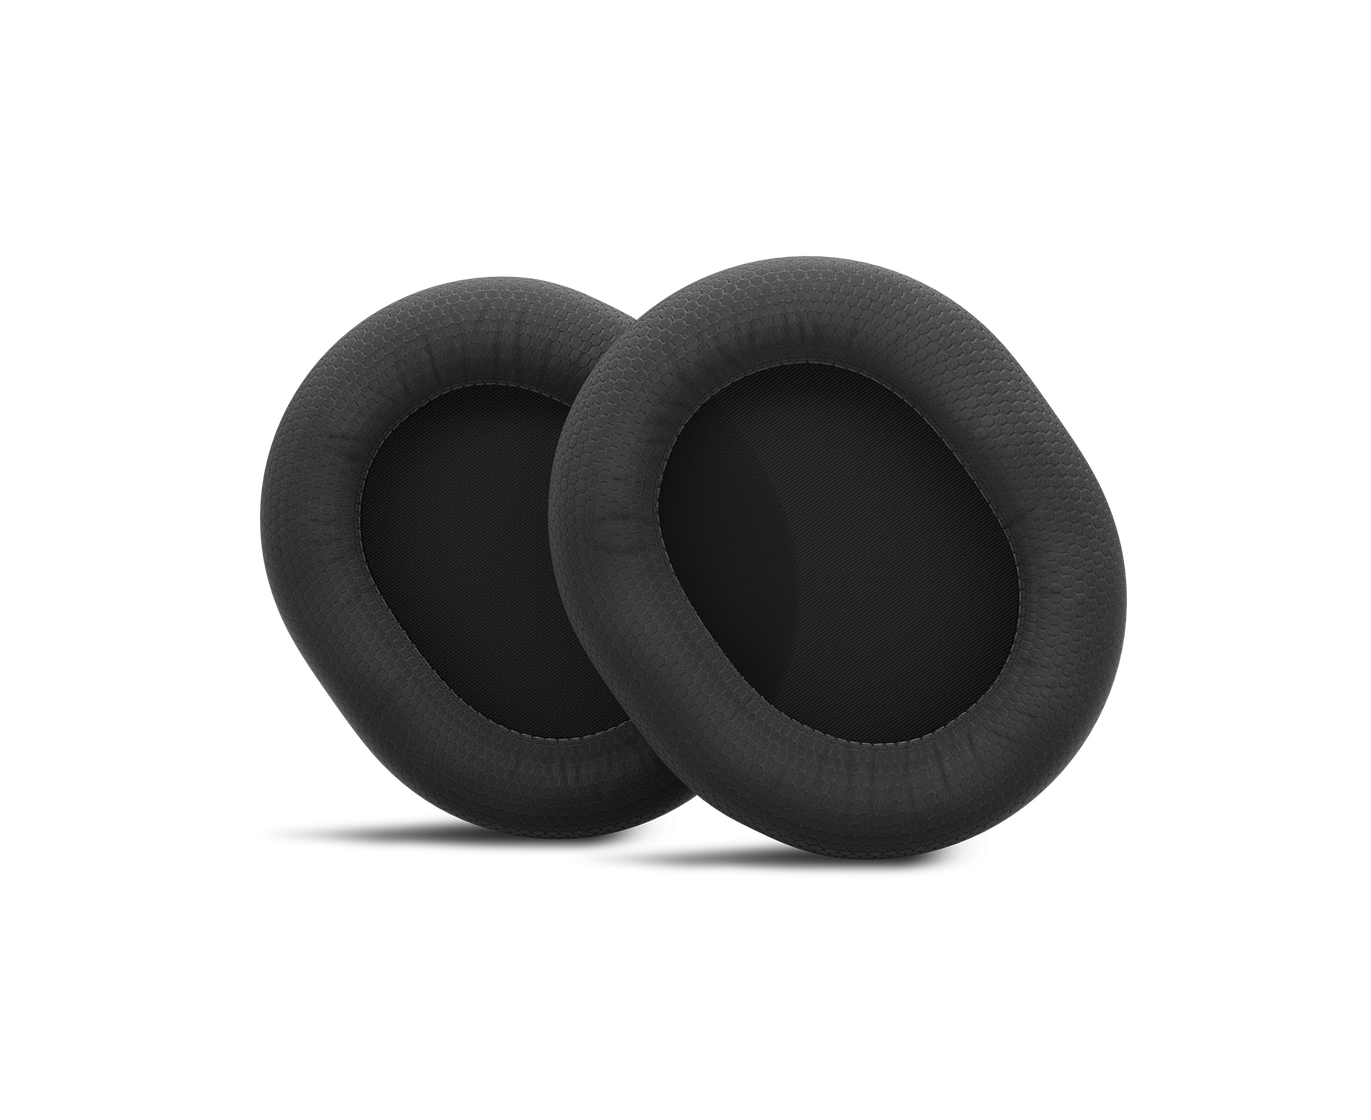 Arctis Ear Cushions Steelseries